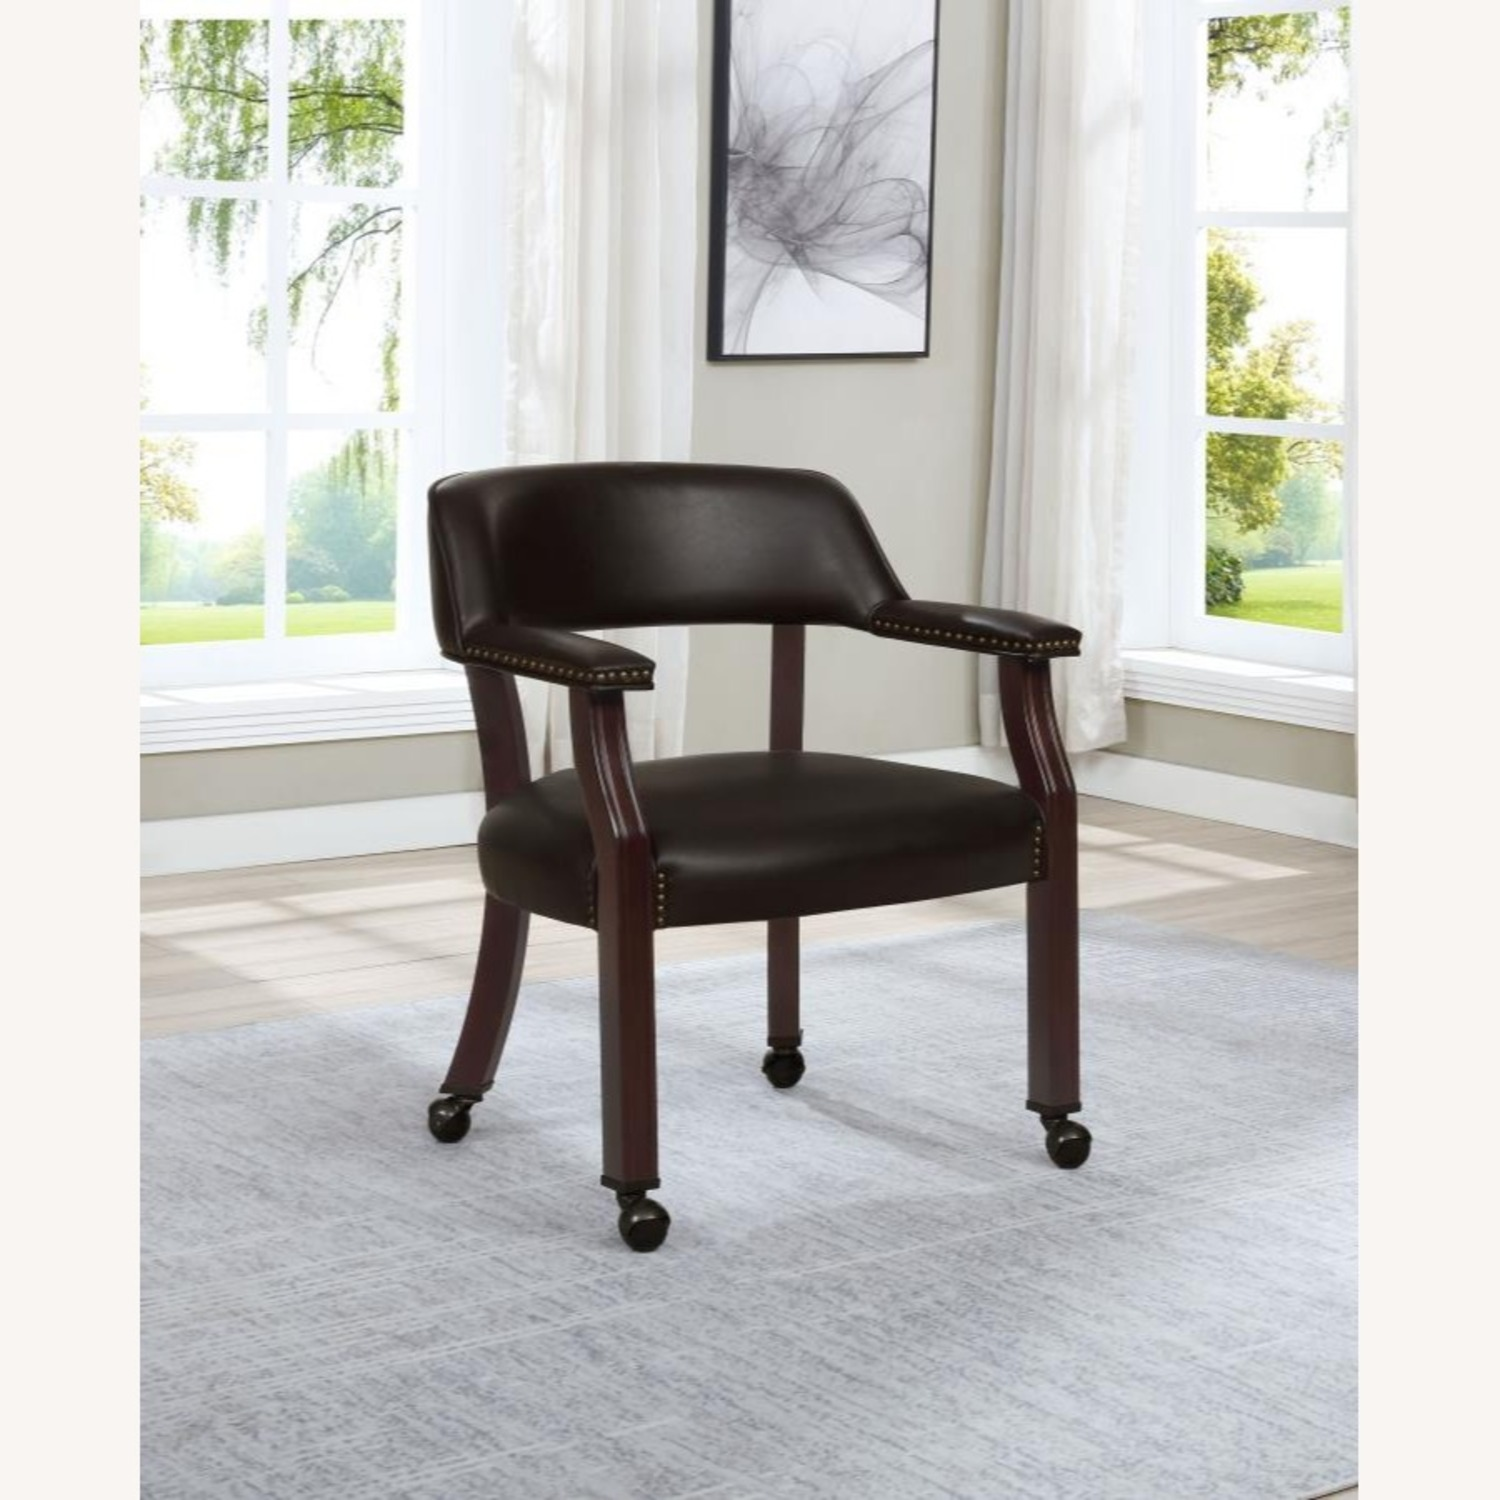 Guest Chair In Brown Leatherette Upholstery - image-2